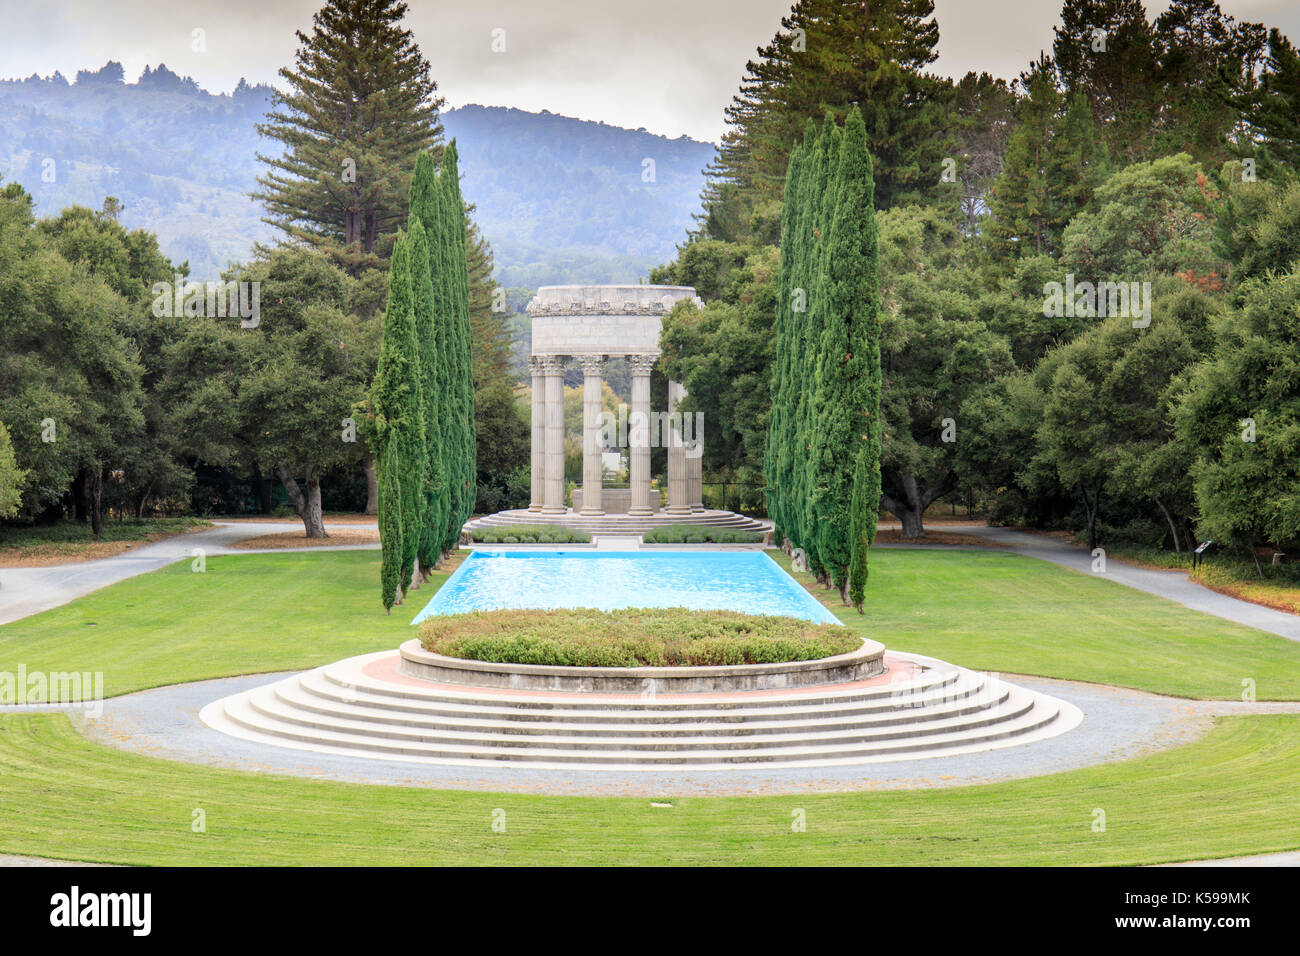 Pulgas Water Temple. - Stock Image